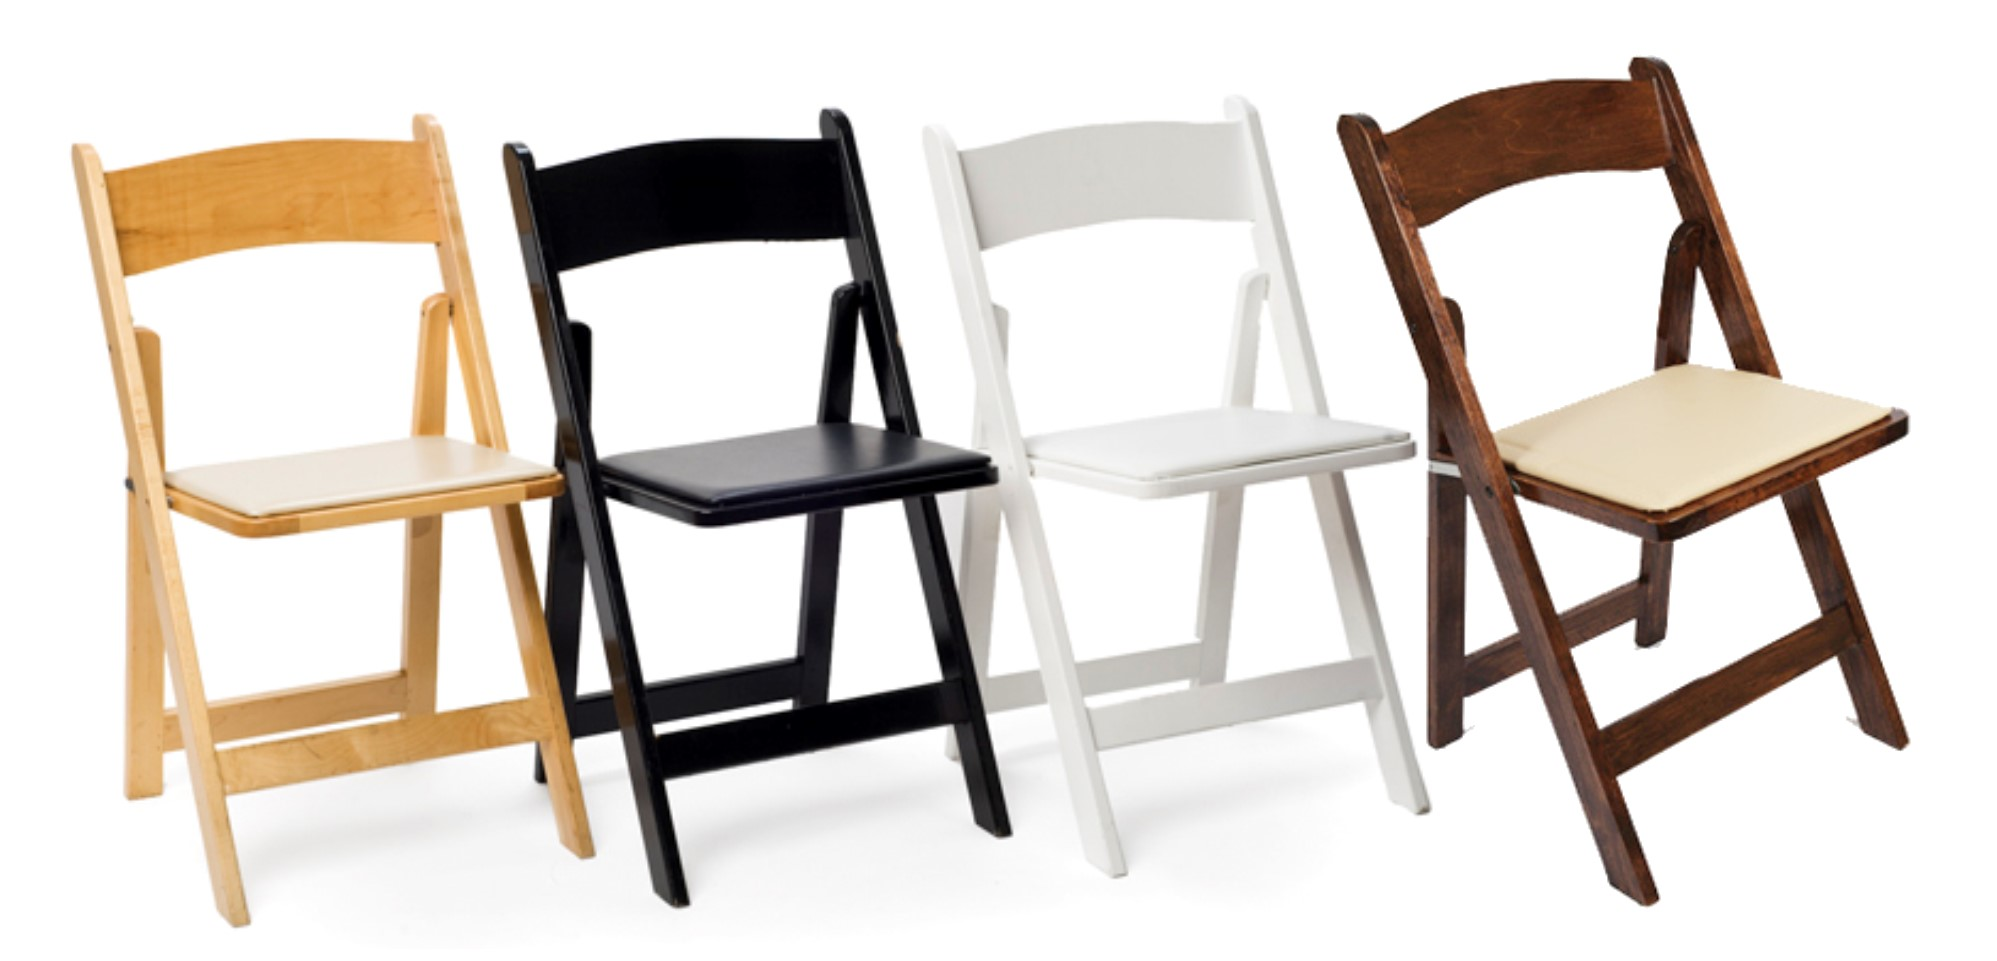 Chairs Folding Chairs Padded Folding Chairs